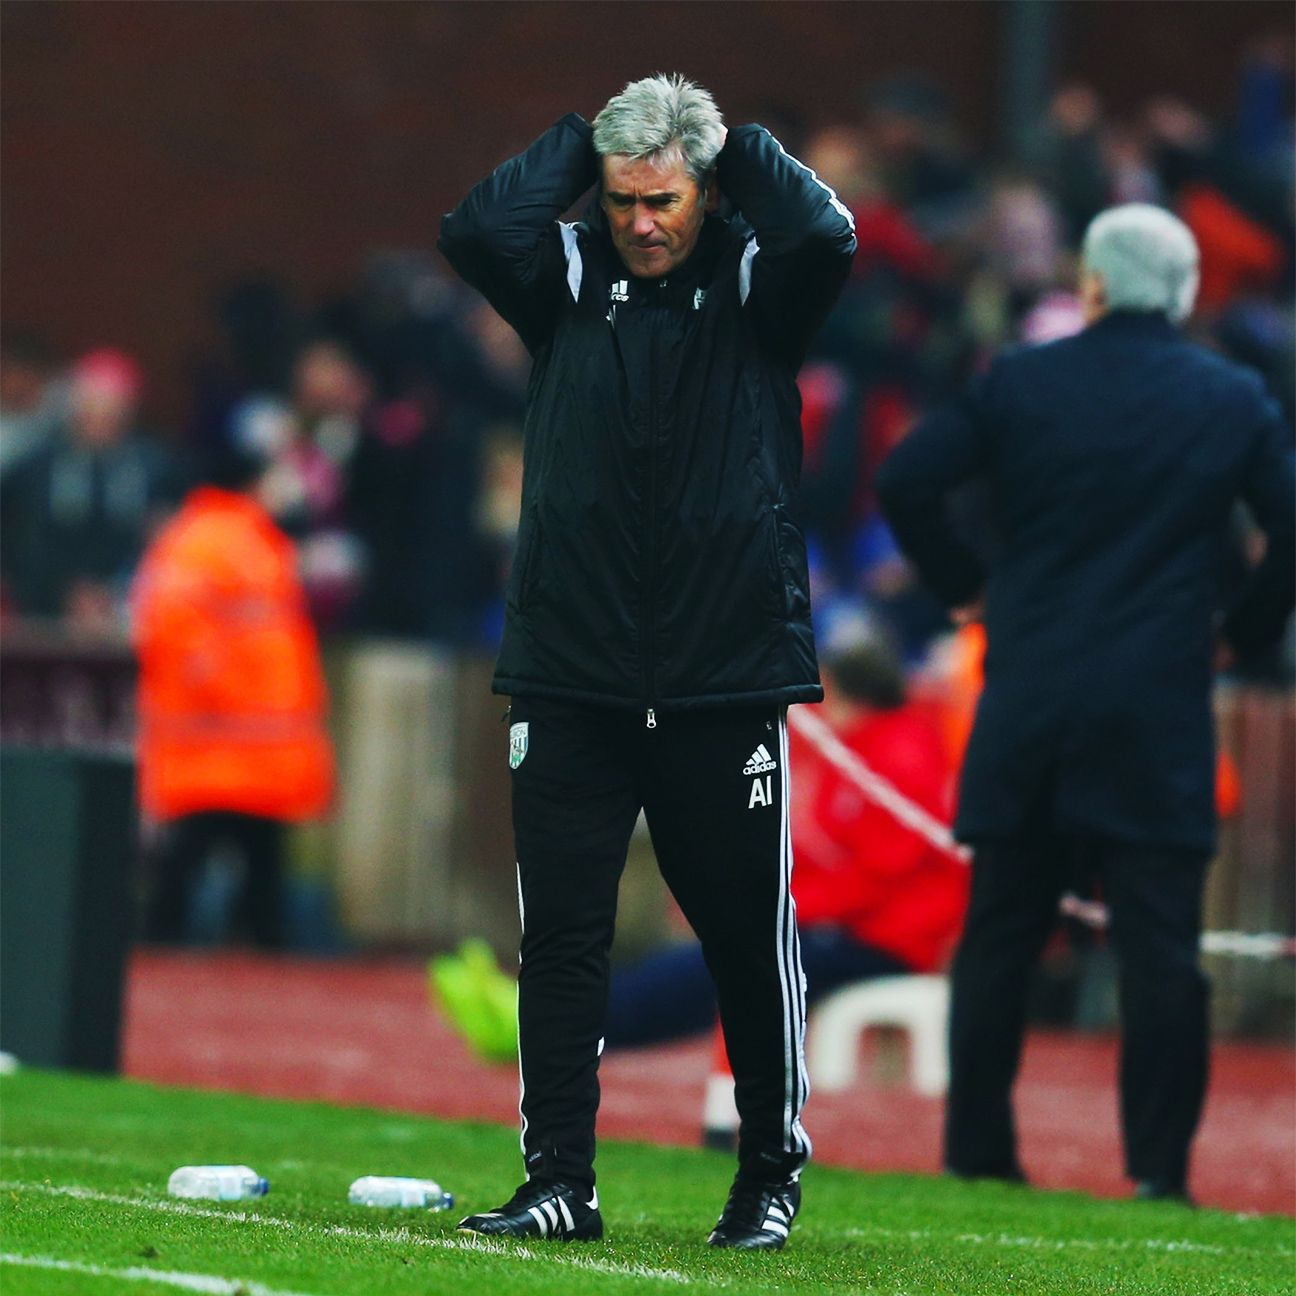 West Brom boss Alan Irvine was booed by supporters following Sunday's 2-0 defeat at Stoke.